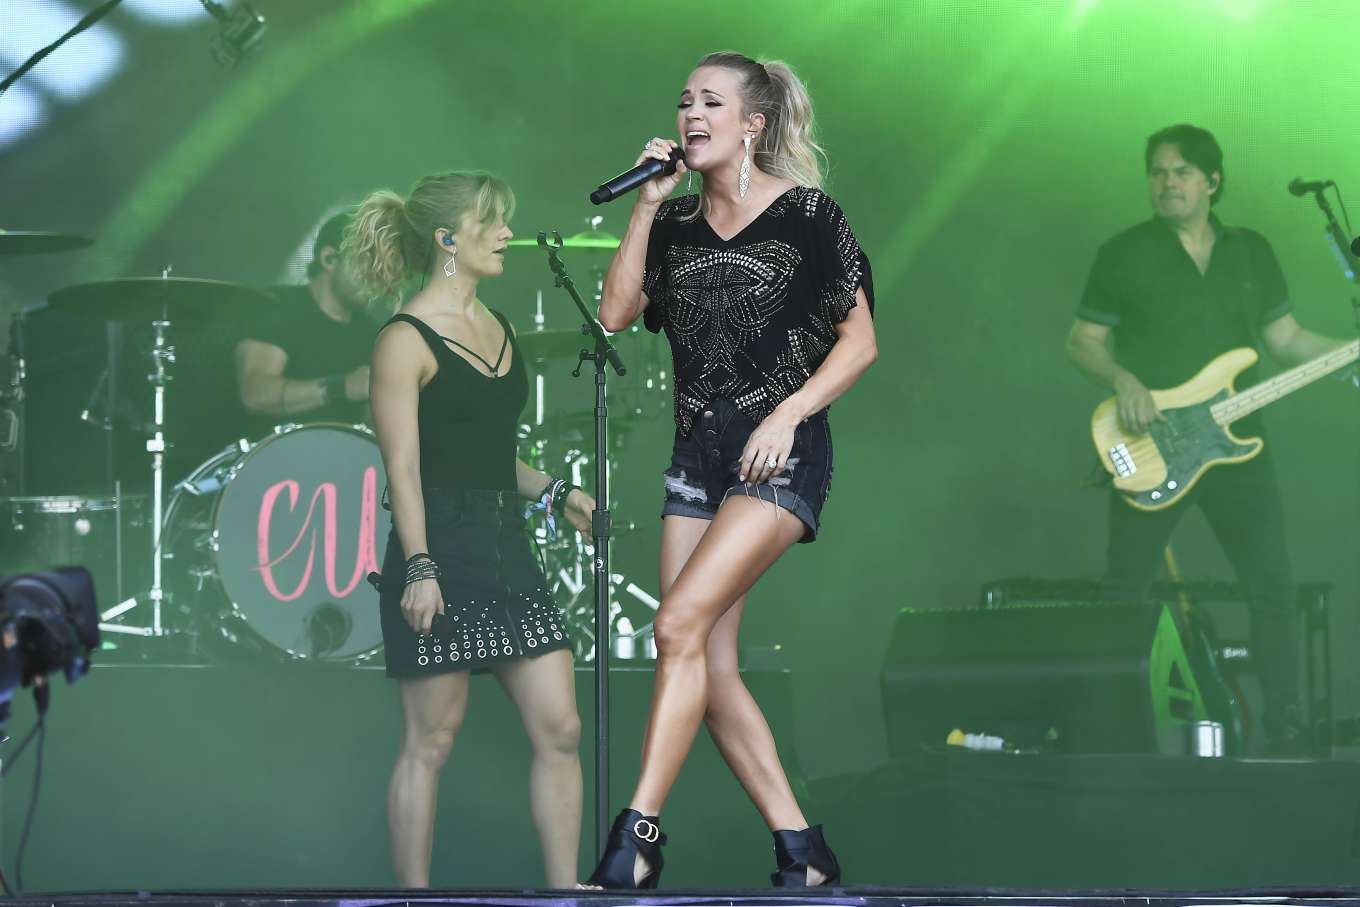 Carrie Underwood 2019 : Carrie Underwood – Performing on the Pyramid Stage at Glastonbury Festival-18